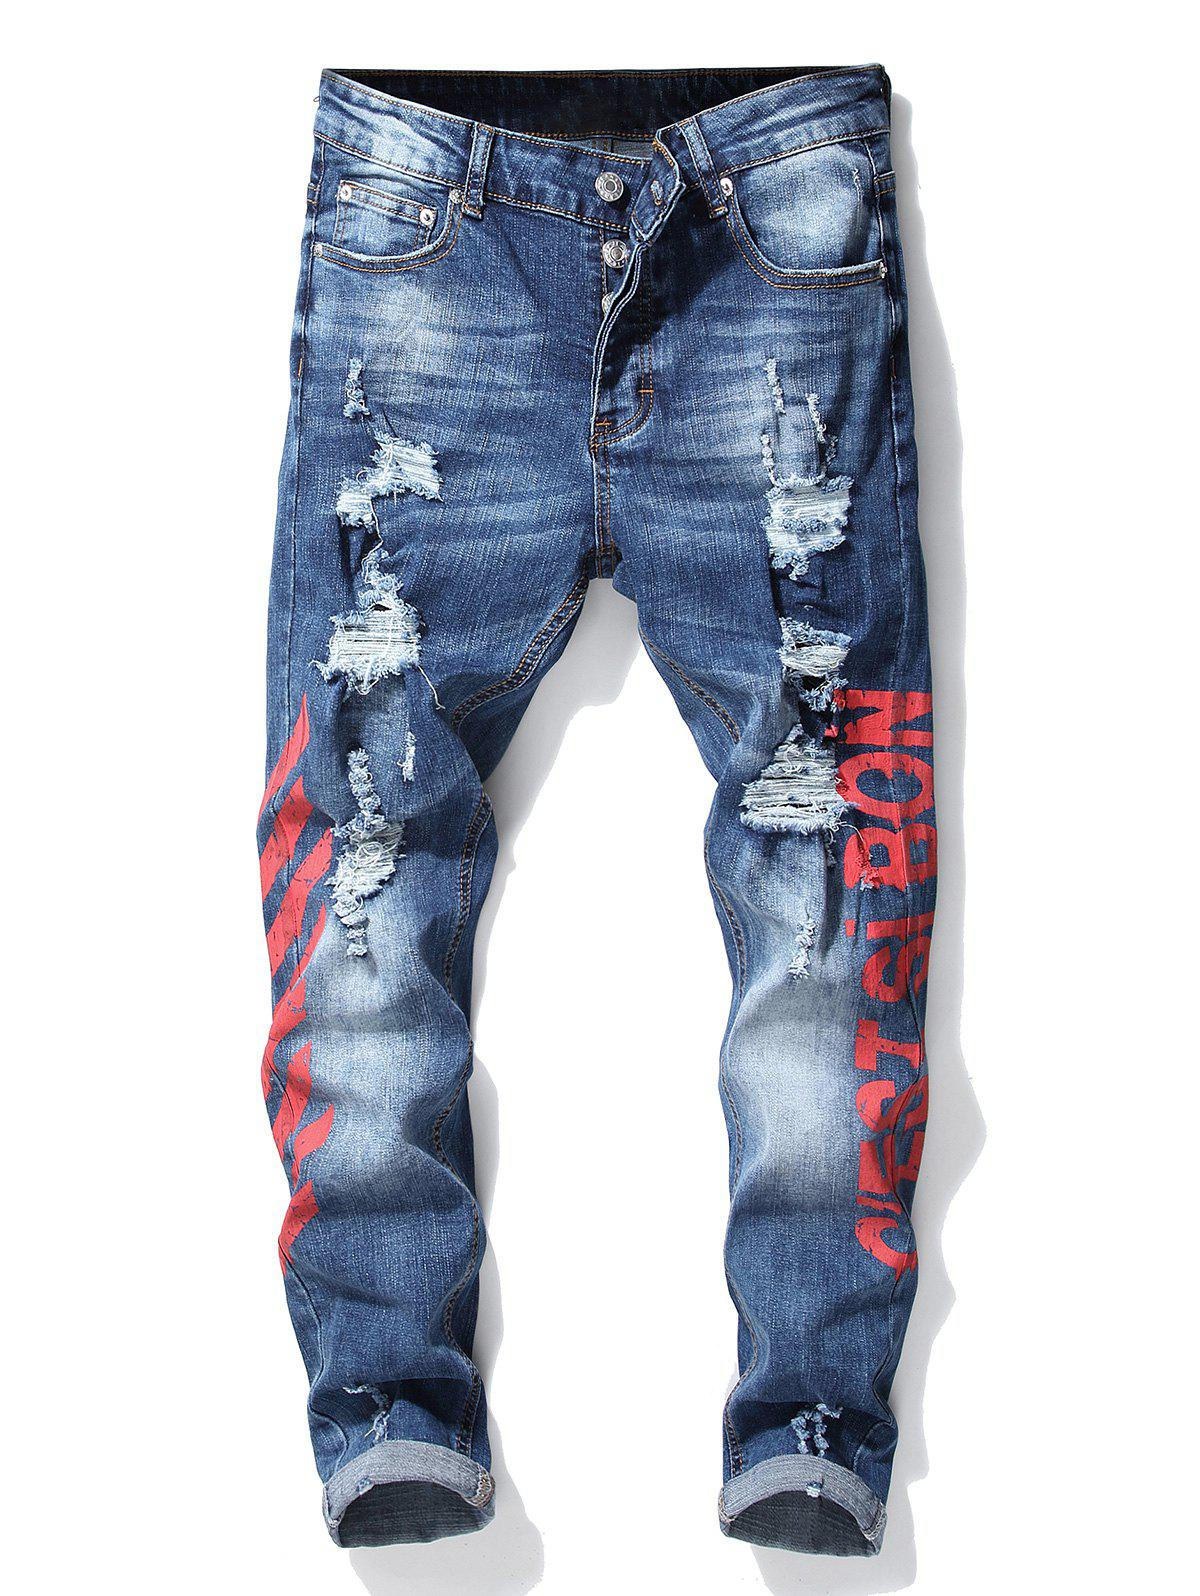 Online Button Fly Stripe Letter Ripped Slim Fit Jeans